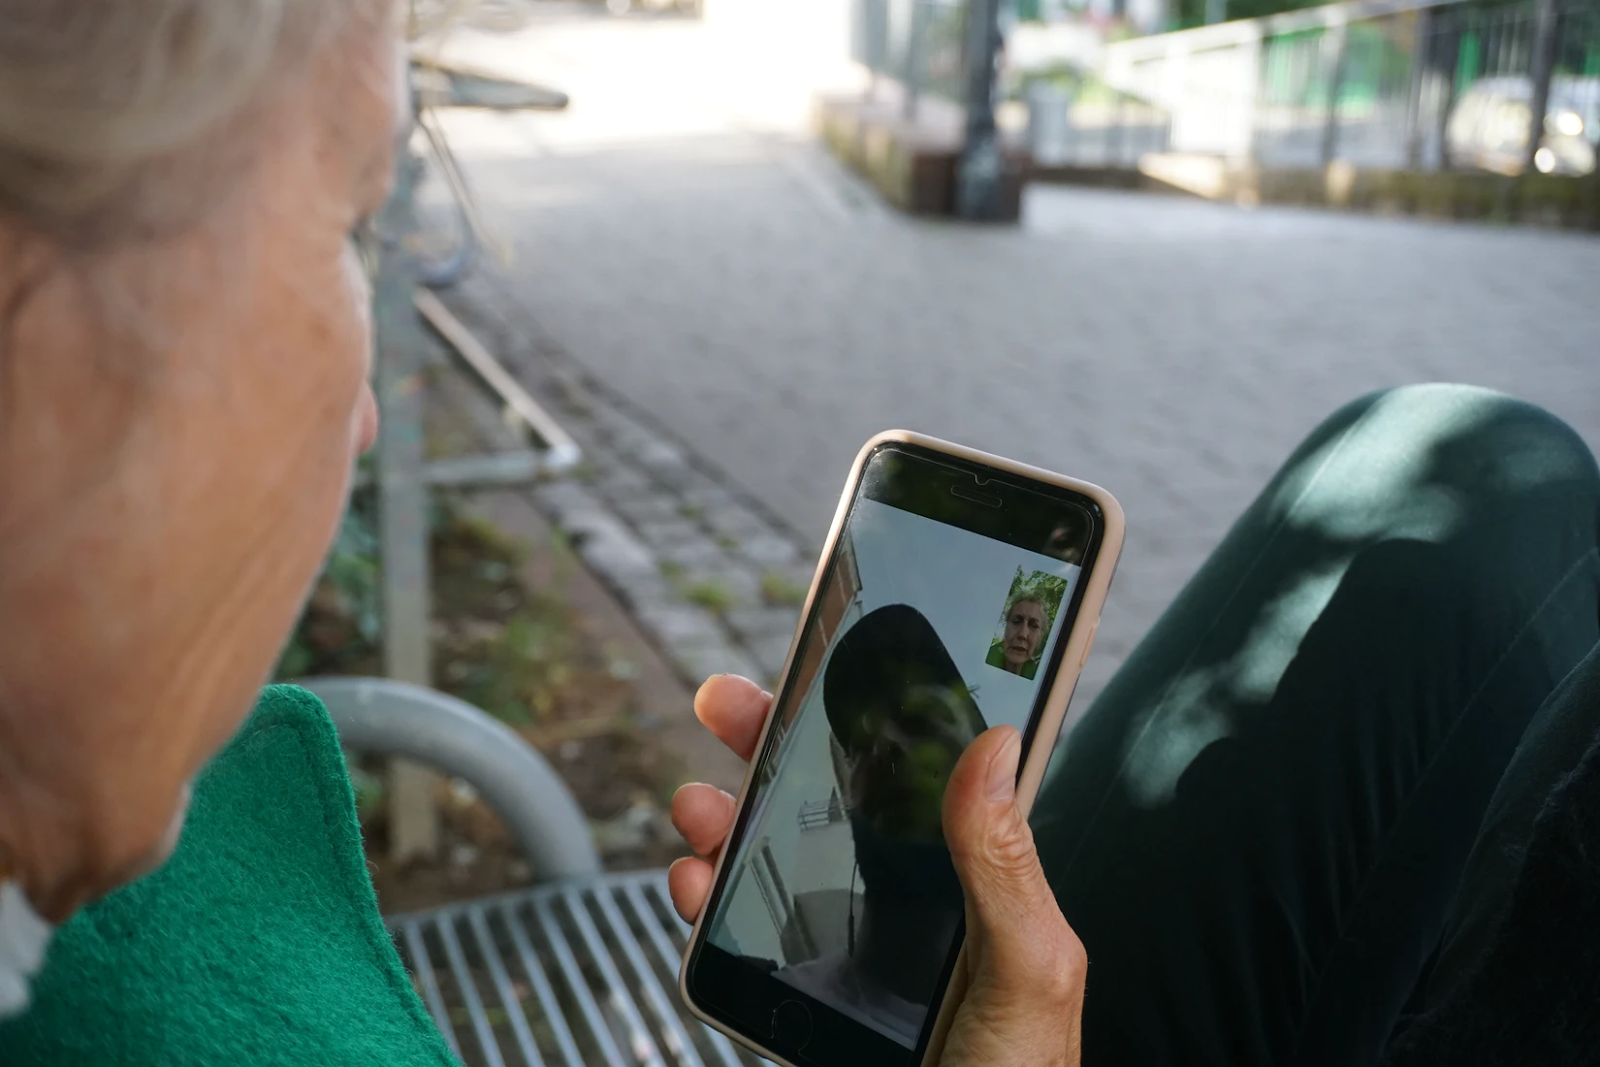 An image of an old woman holding a phone in her hand. She is on a video call with a man in a baseball cap.